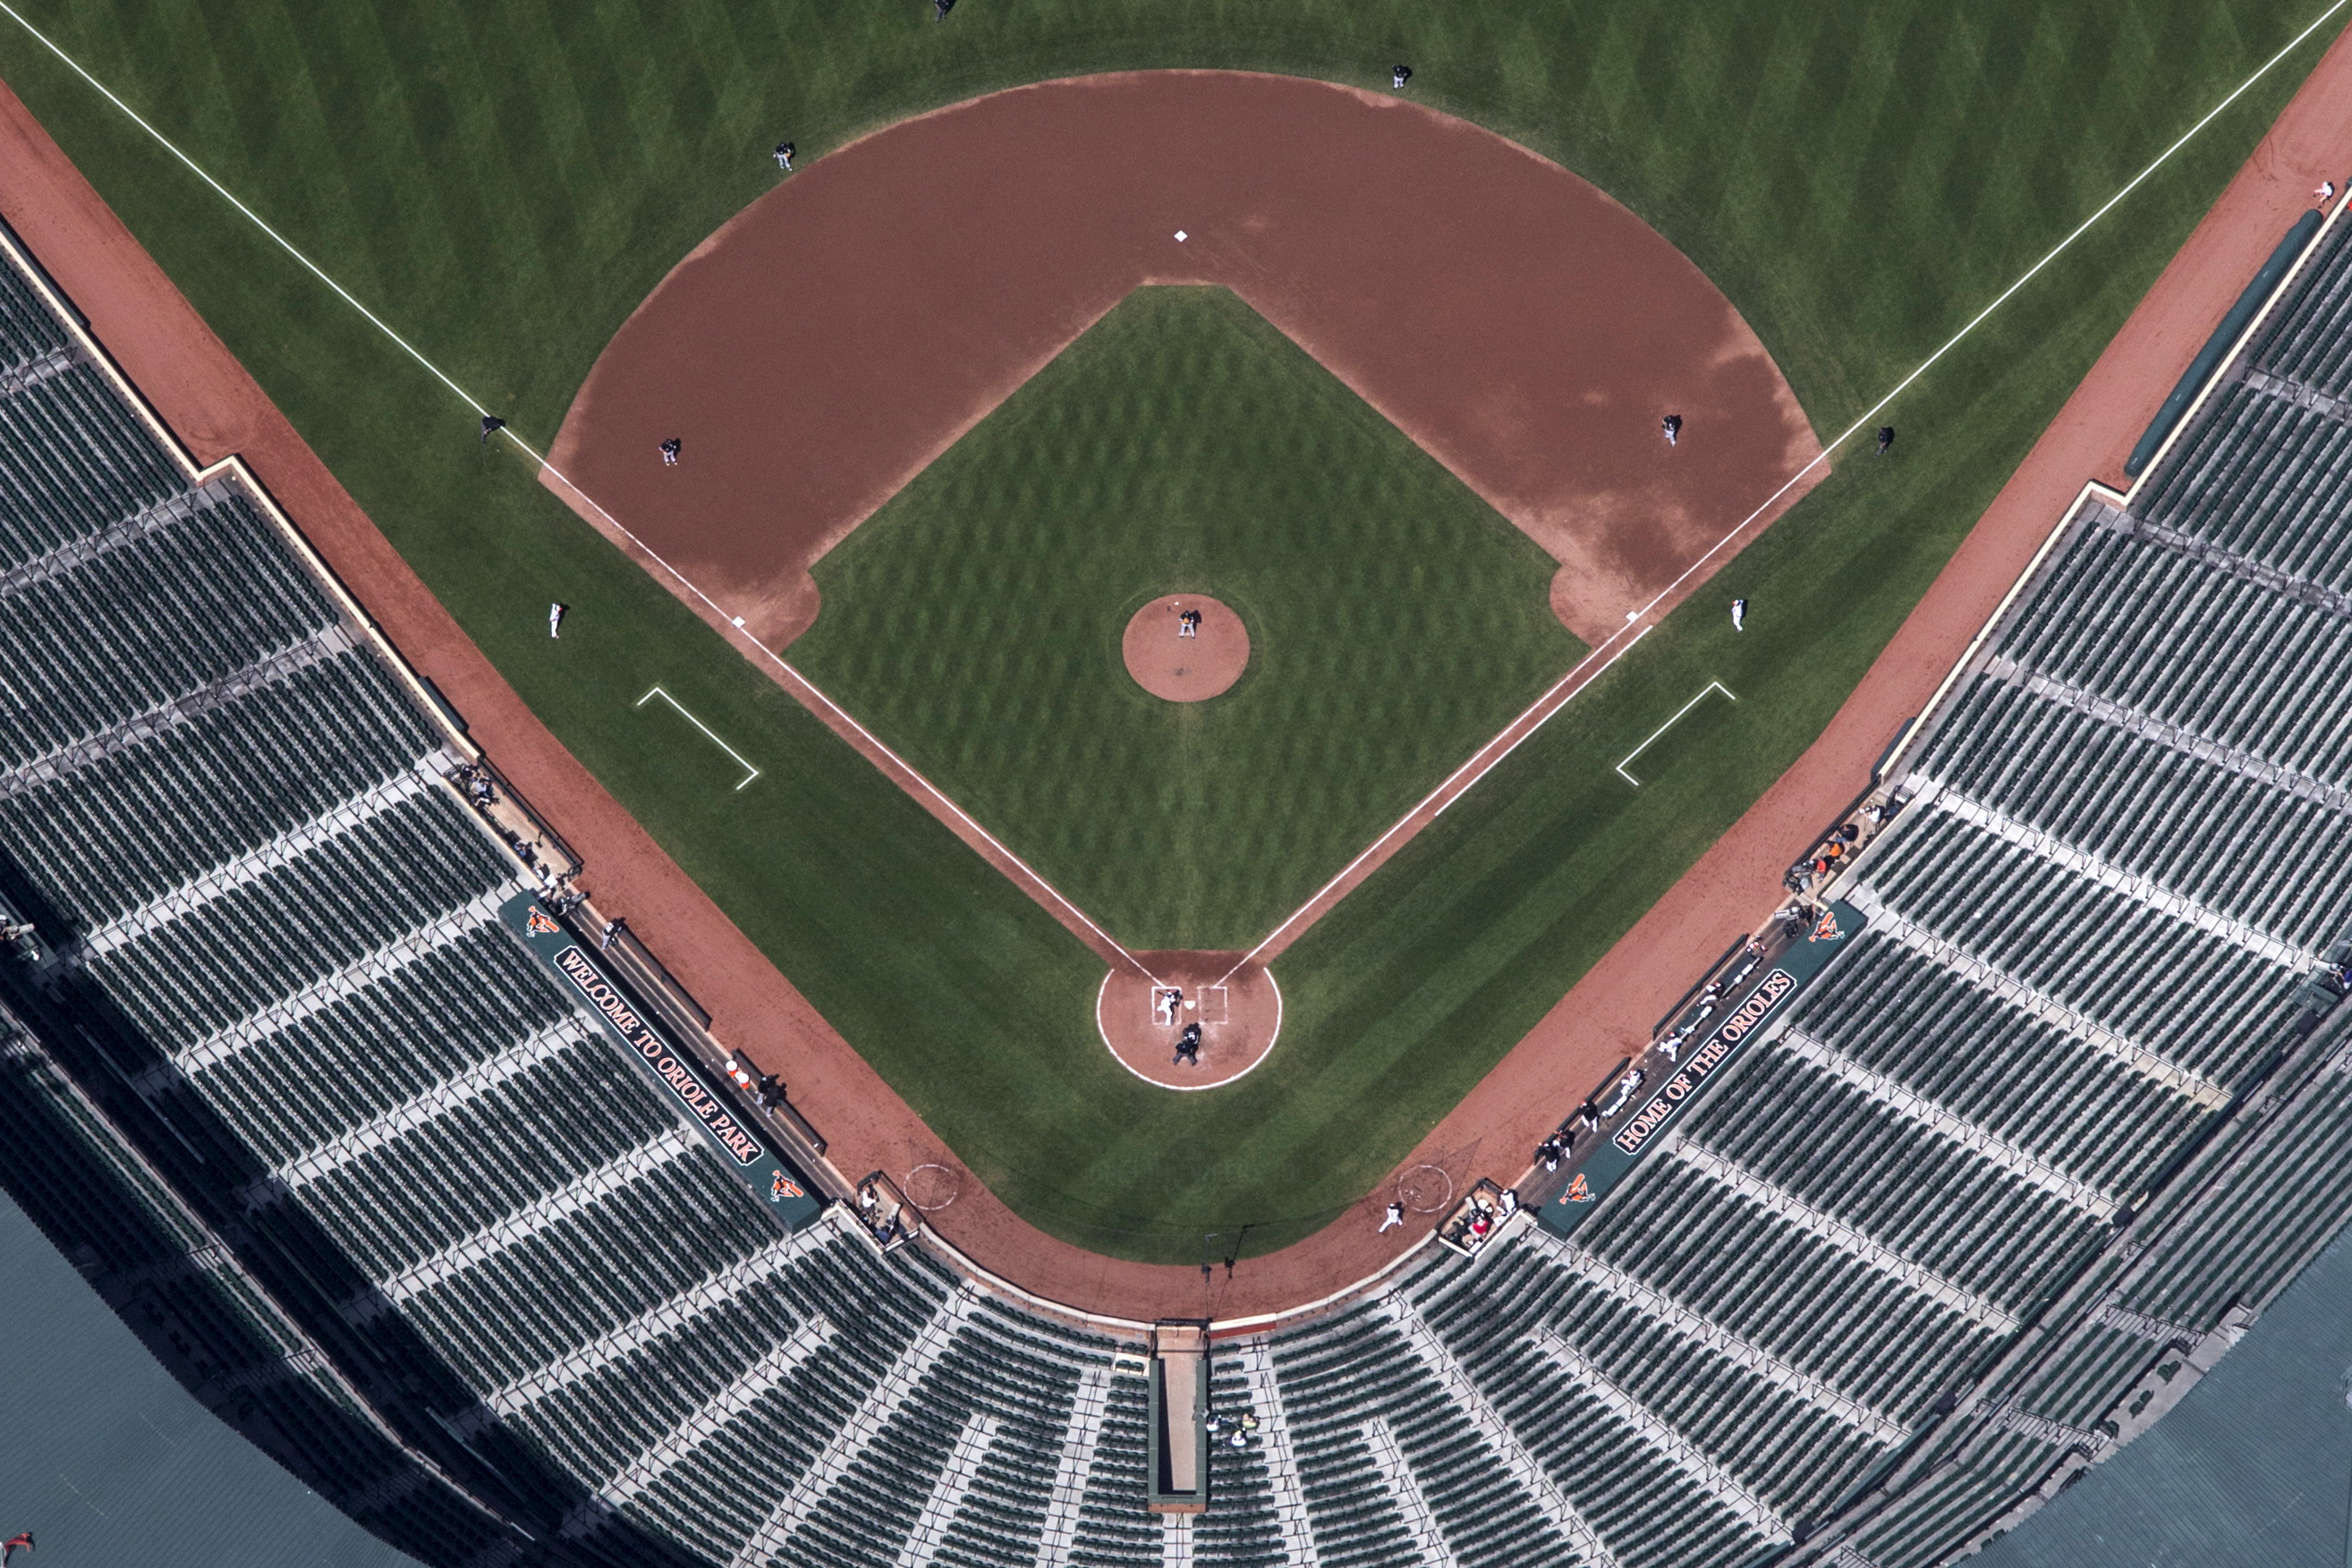 Camden Yards ballpark is seen without fans in this aerial image as Orioles take the bat against the White Sox in Baltimore